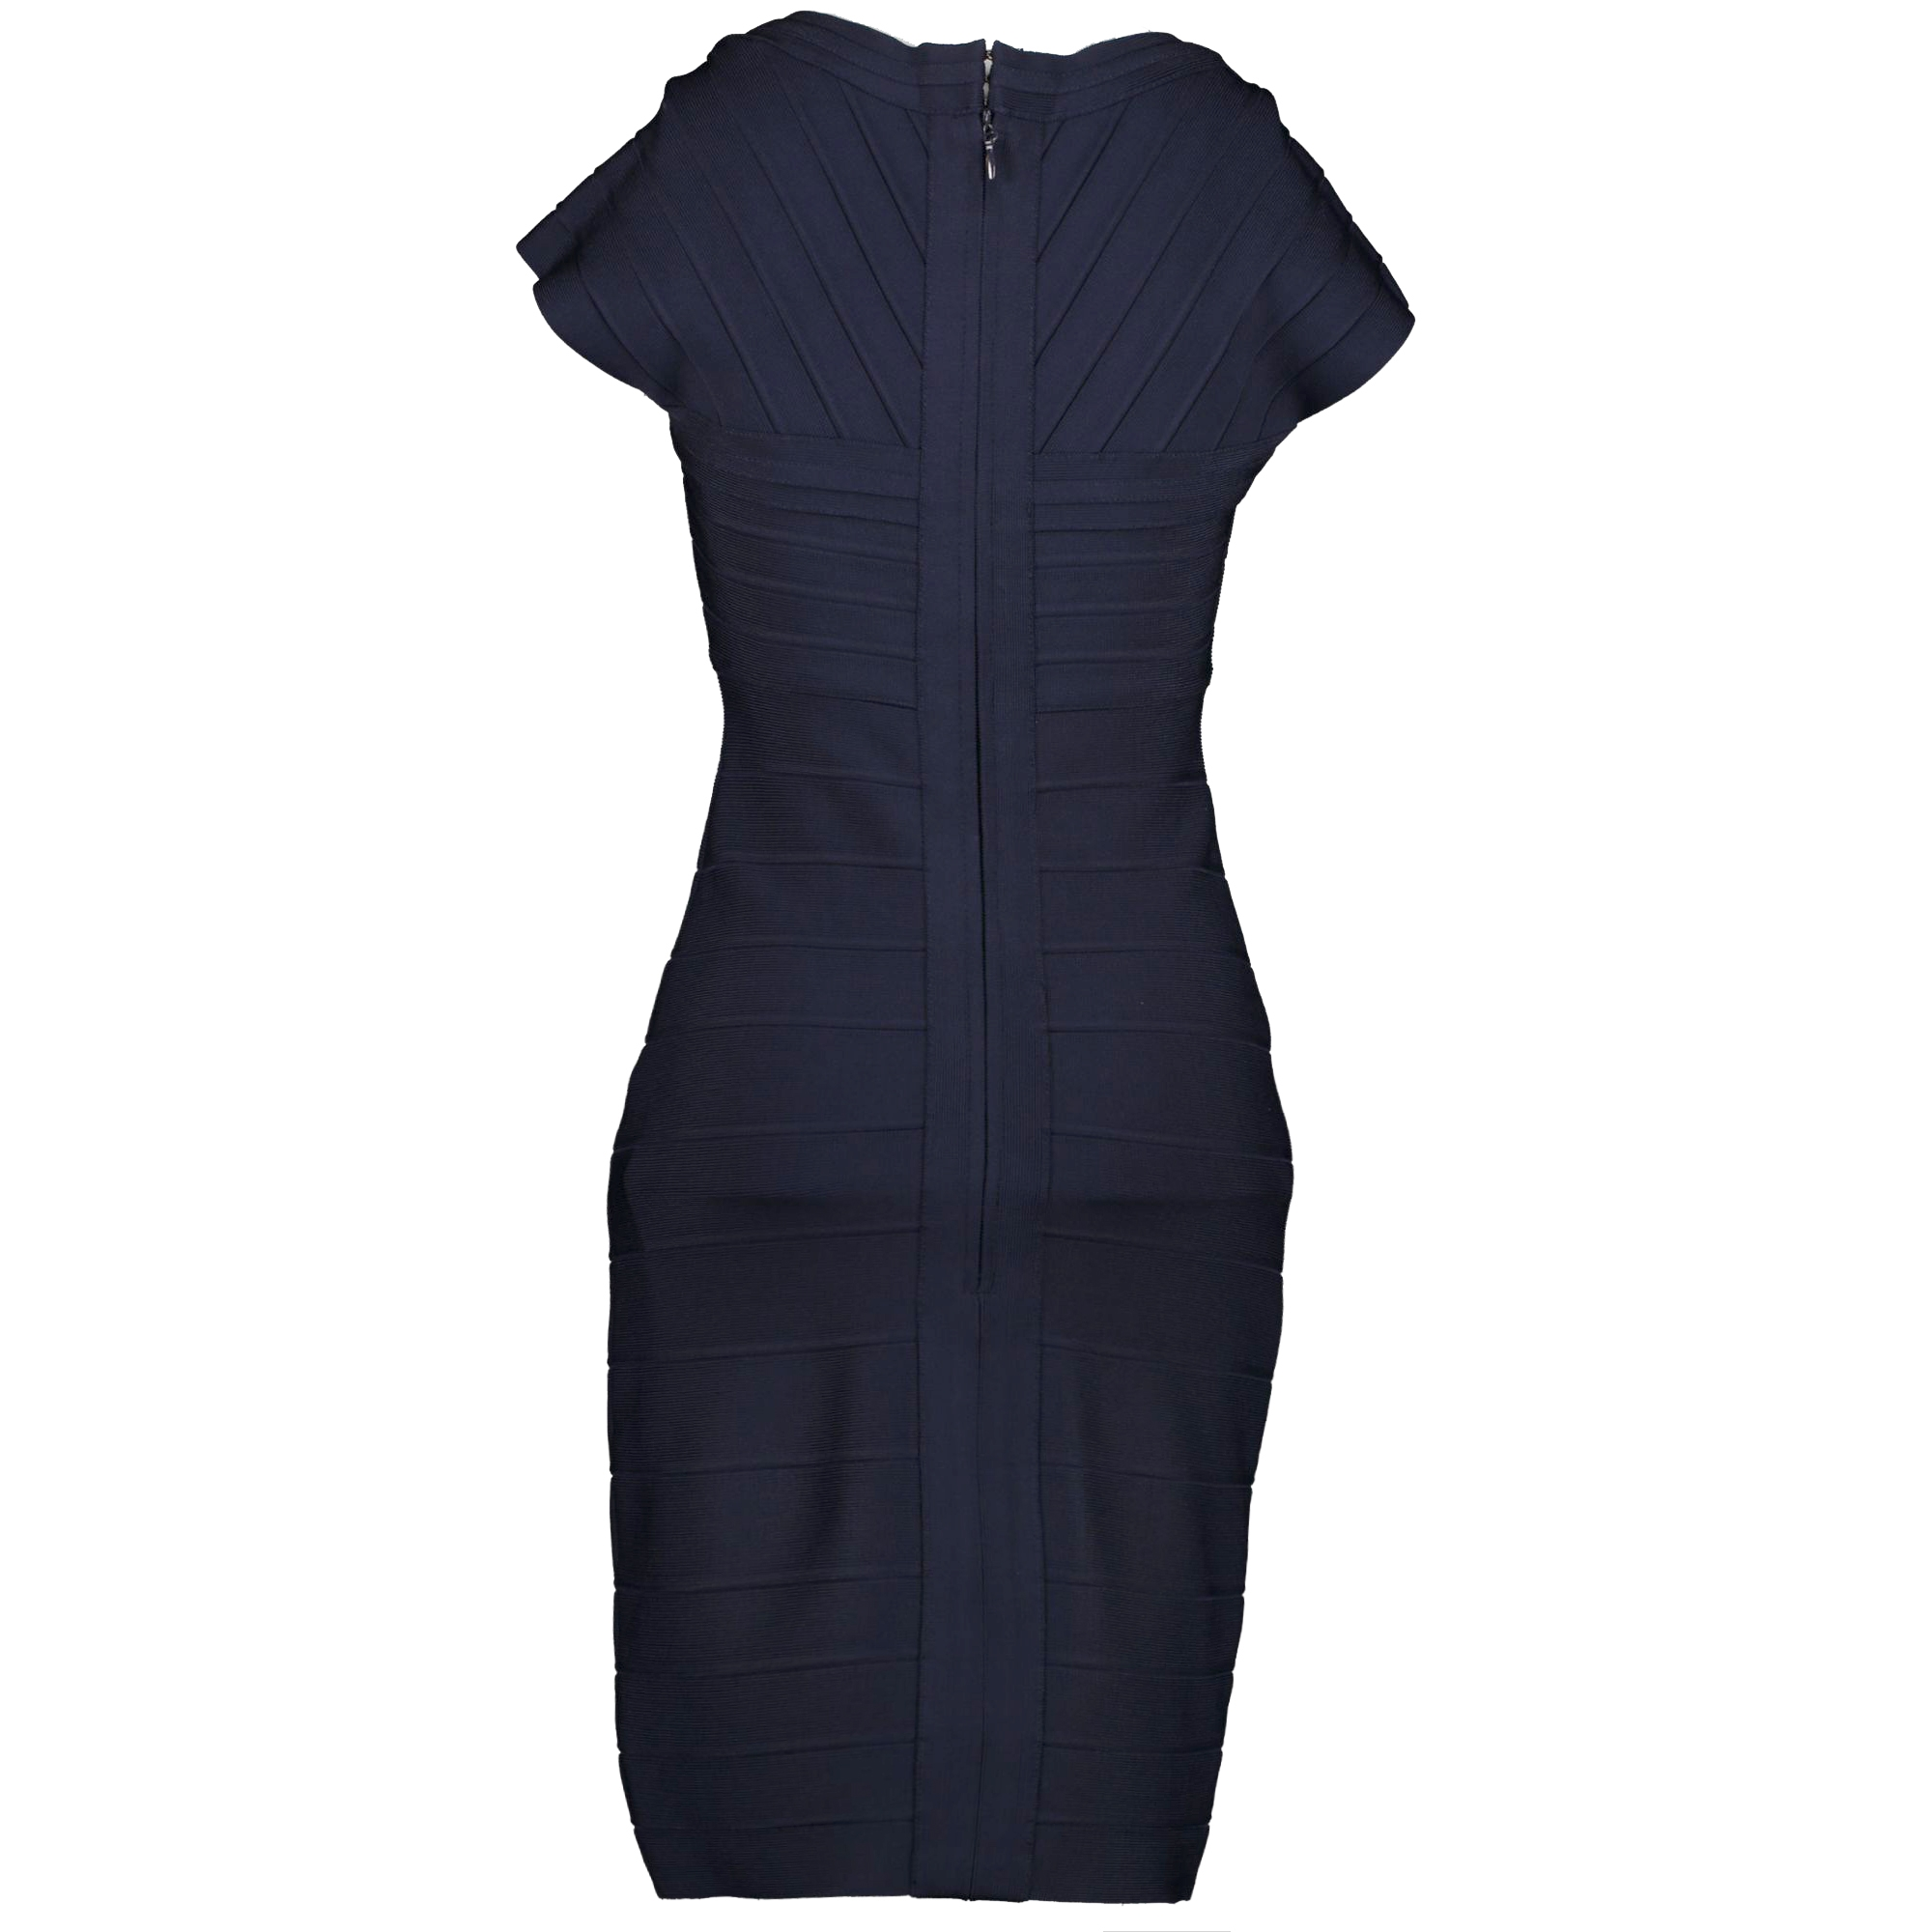 Hervé Leger Dark Blue Bandage Dress - Size M